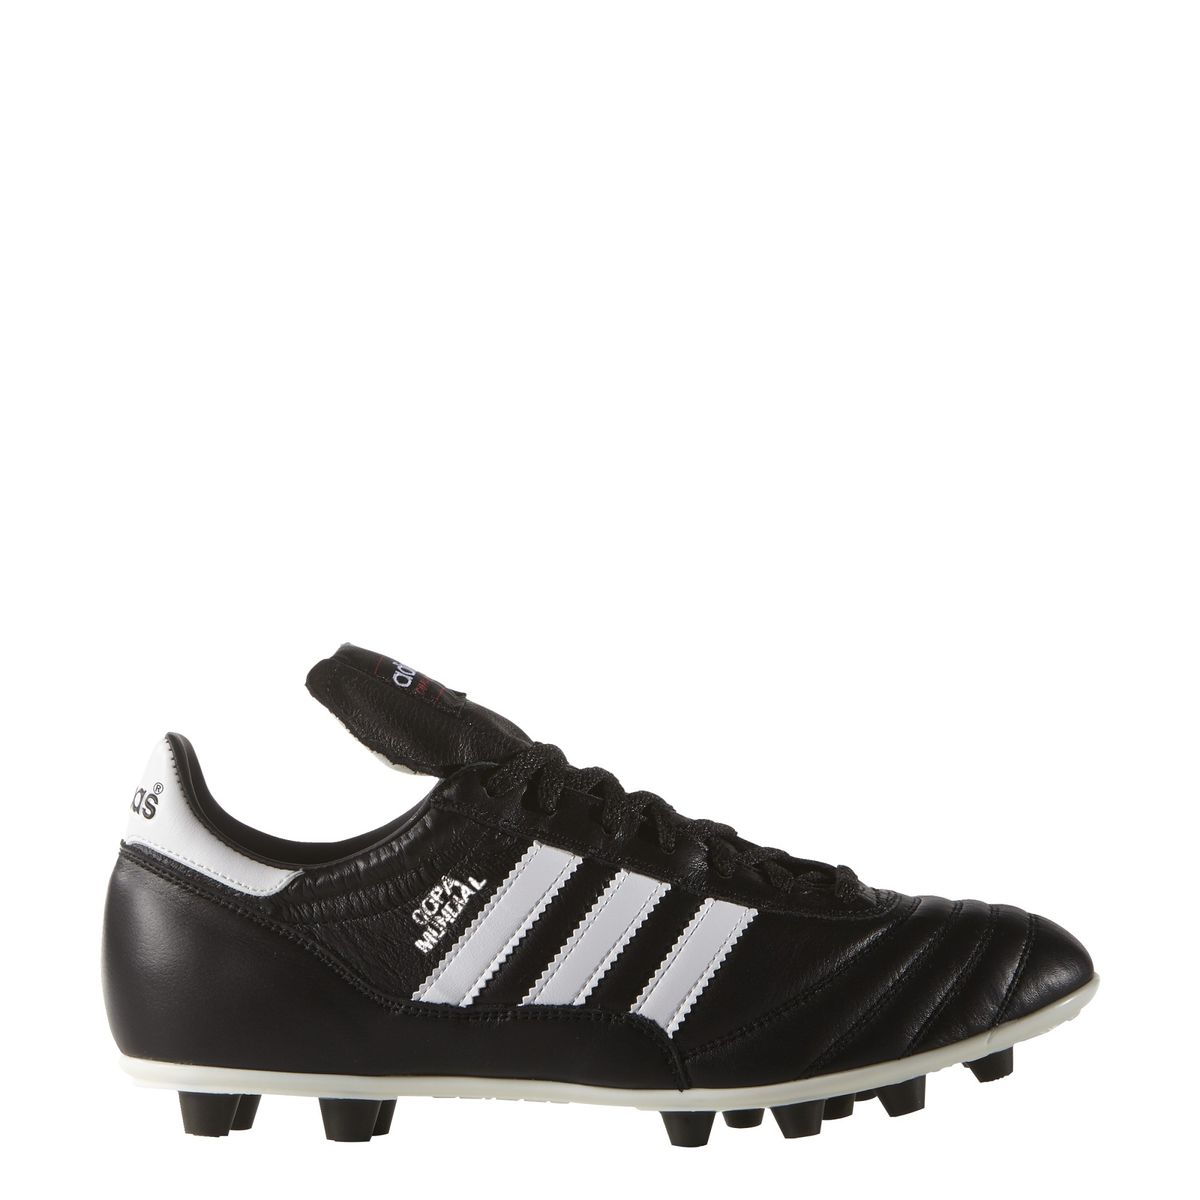 adidas copa mundial for sale south africa